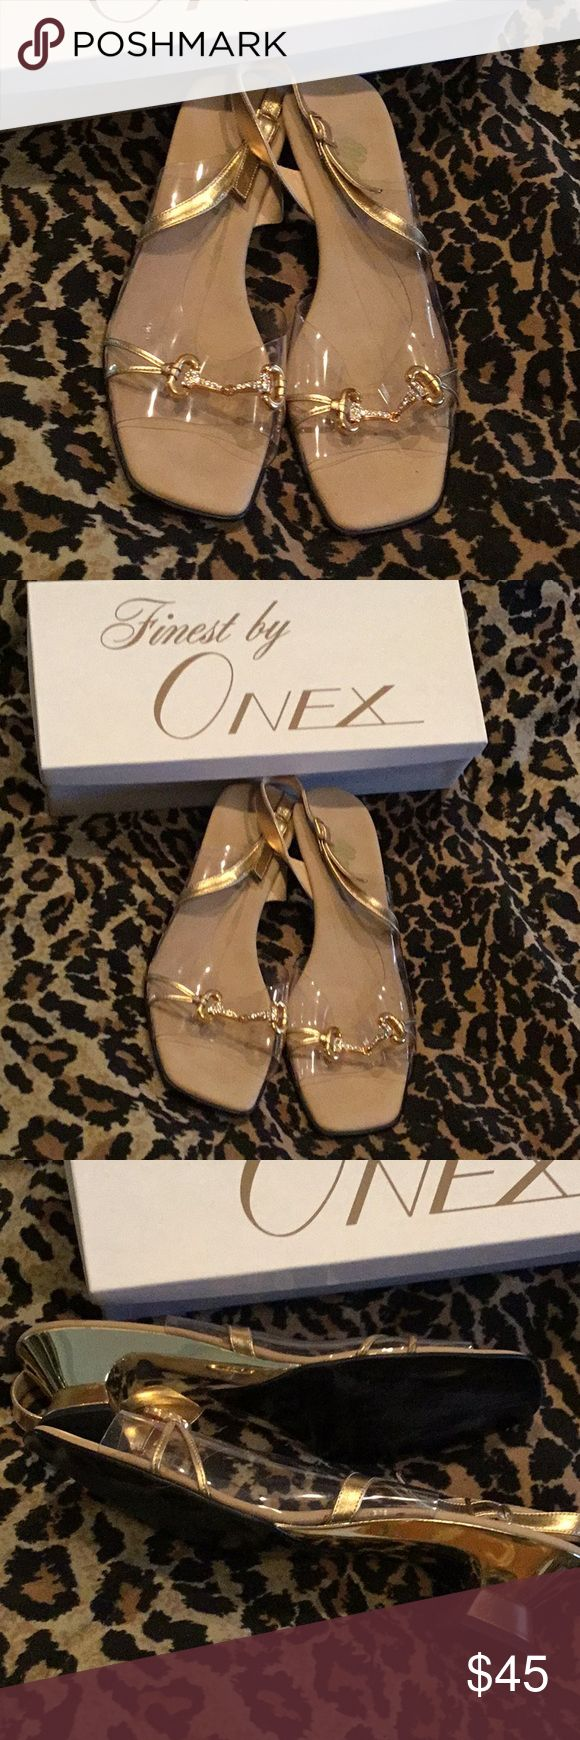 Onex Gold Metallic & Crystal Horsebit Sandal Absolutely fabulous Onex sandals with gold metallic heels that are leather at bottom, leather straps, the signature Onex Lucite with gold horsebit with crystal buckle, insole is leather and padded.  If you have worn Onex, you know that they're the most comfortable shoes ever, worn about three times and in excellent condition.  These shoes are a size 10, but run very small and will fit a size 9 perfectly. Onex Shoes Sandals